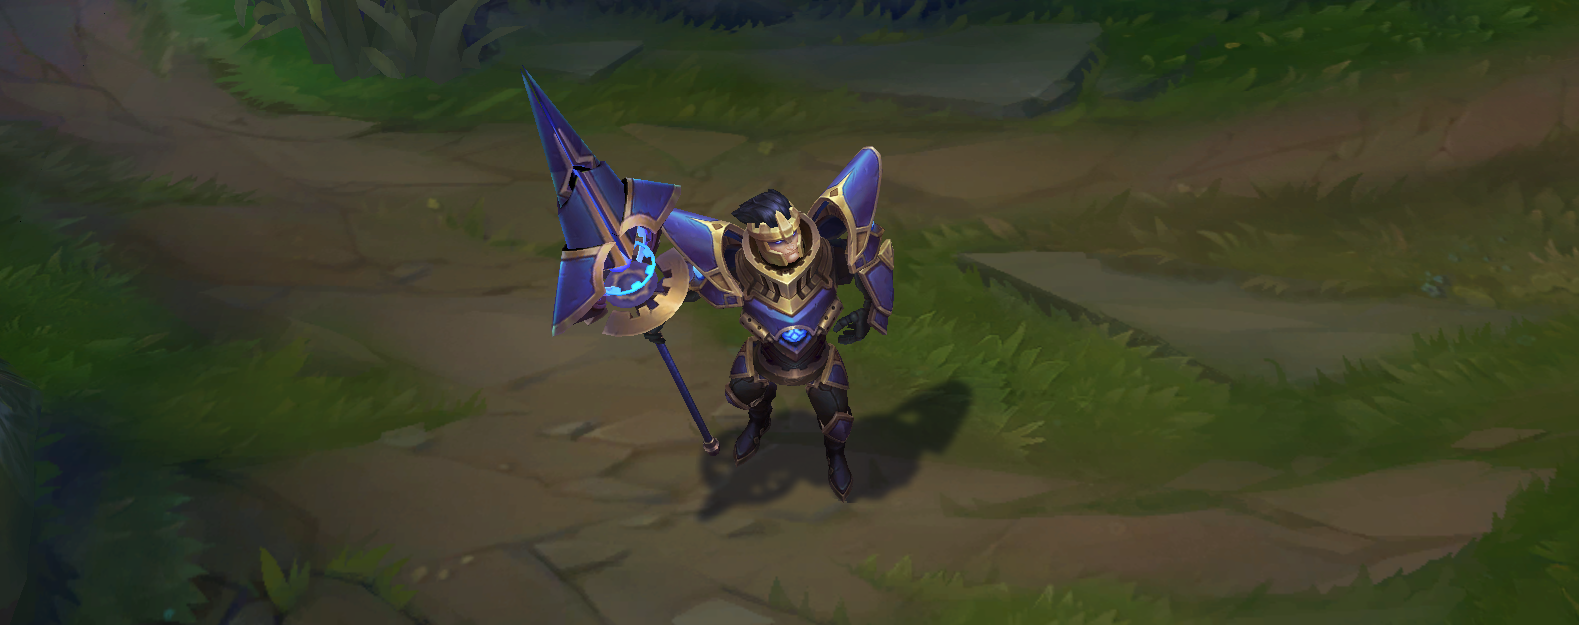 Surrender at 20: 3/19 PBE Update: New Skins, Chroma, and more!